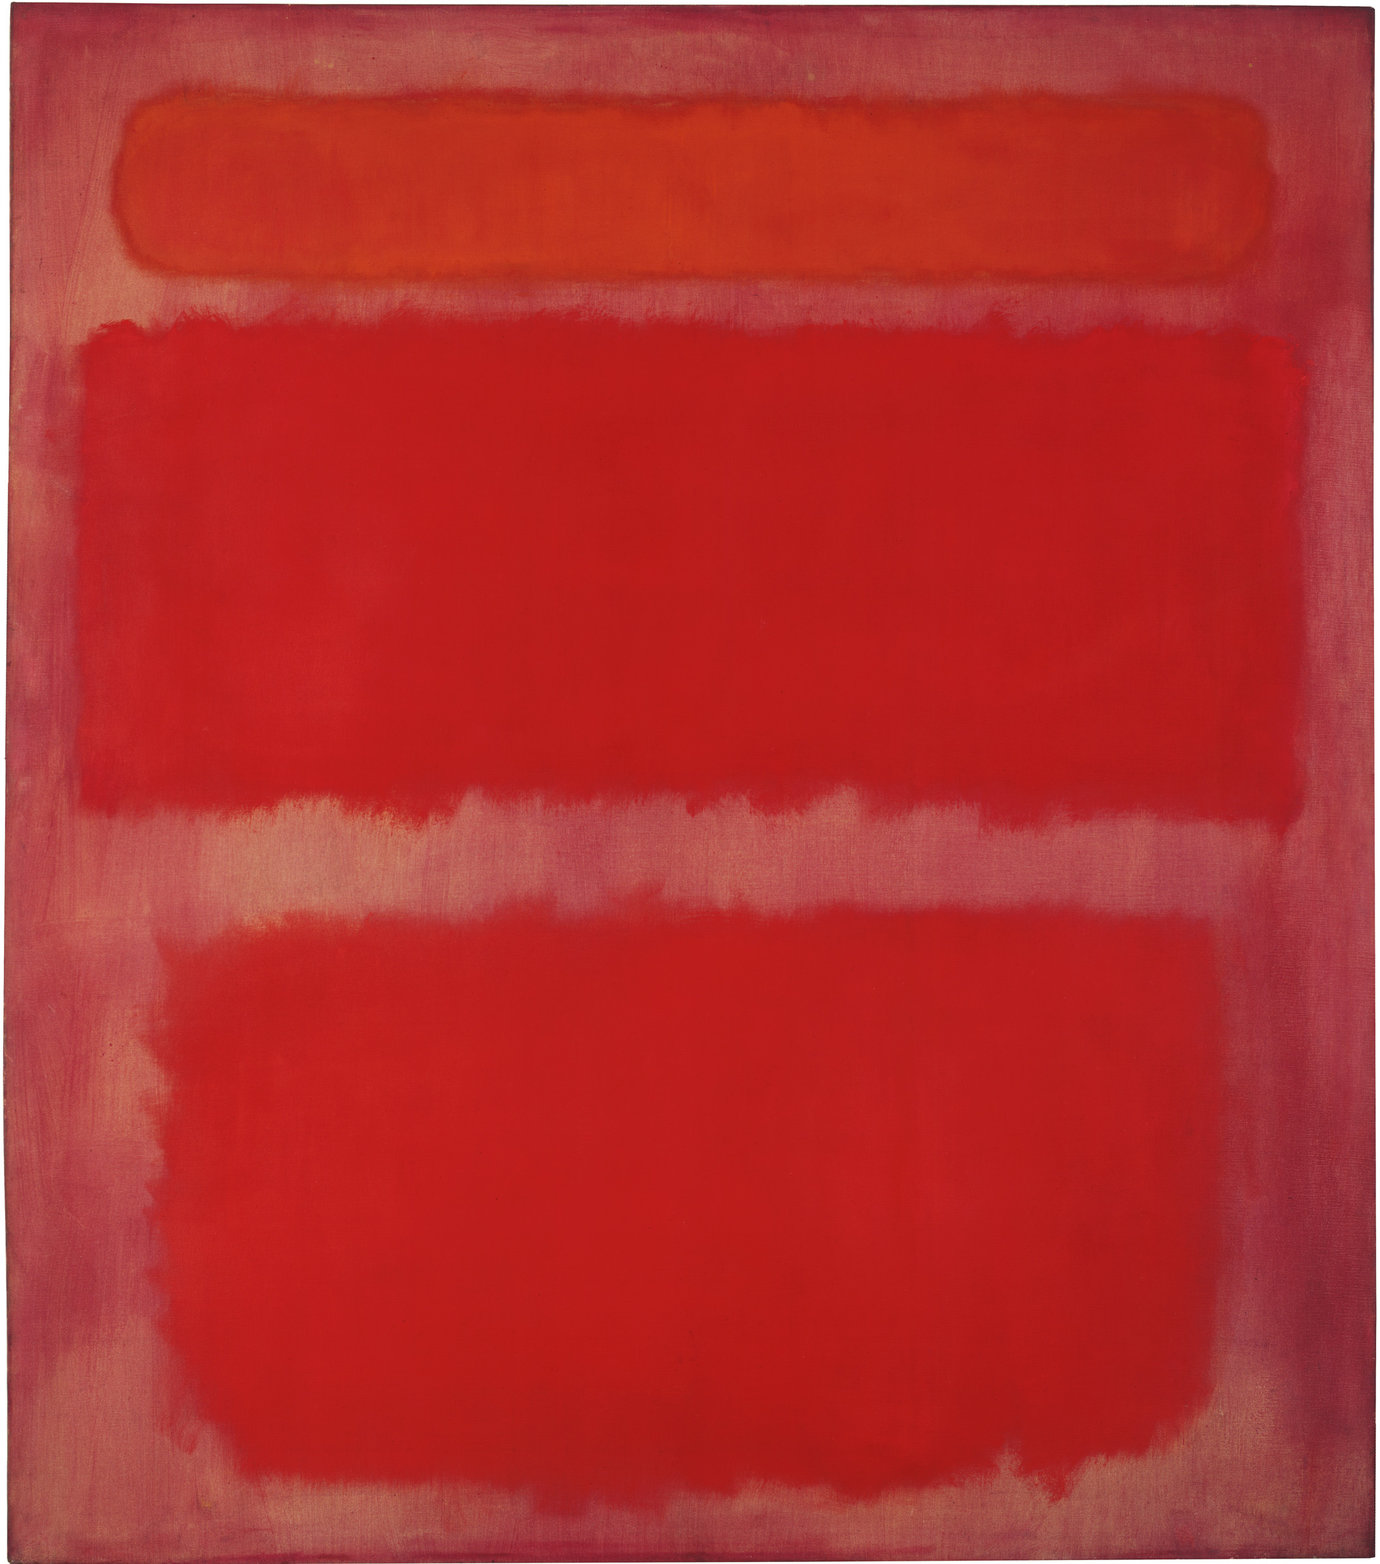 ", 1961. Oil on canvas, 93 x 81""."